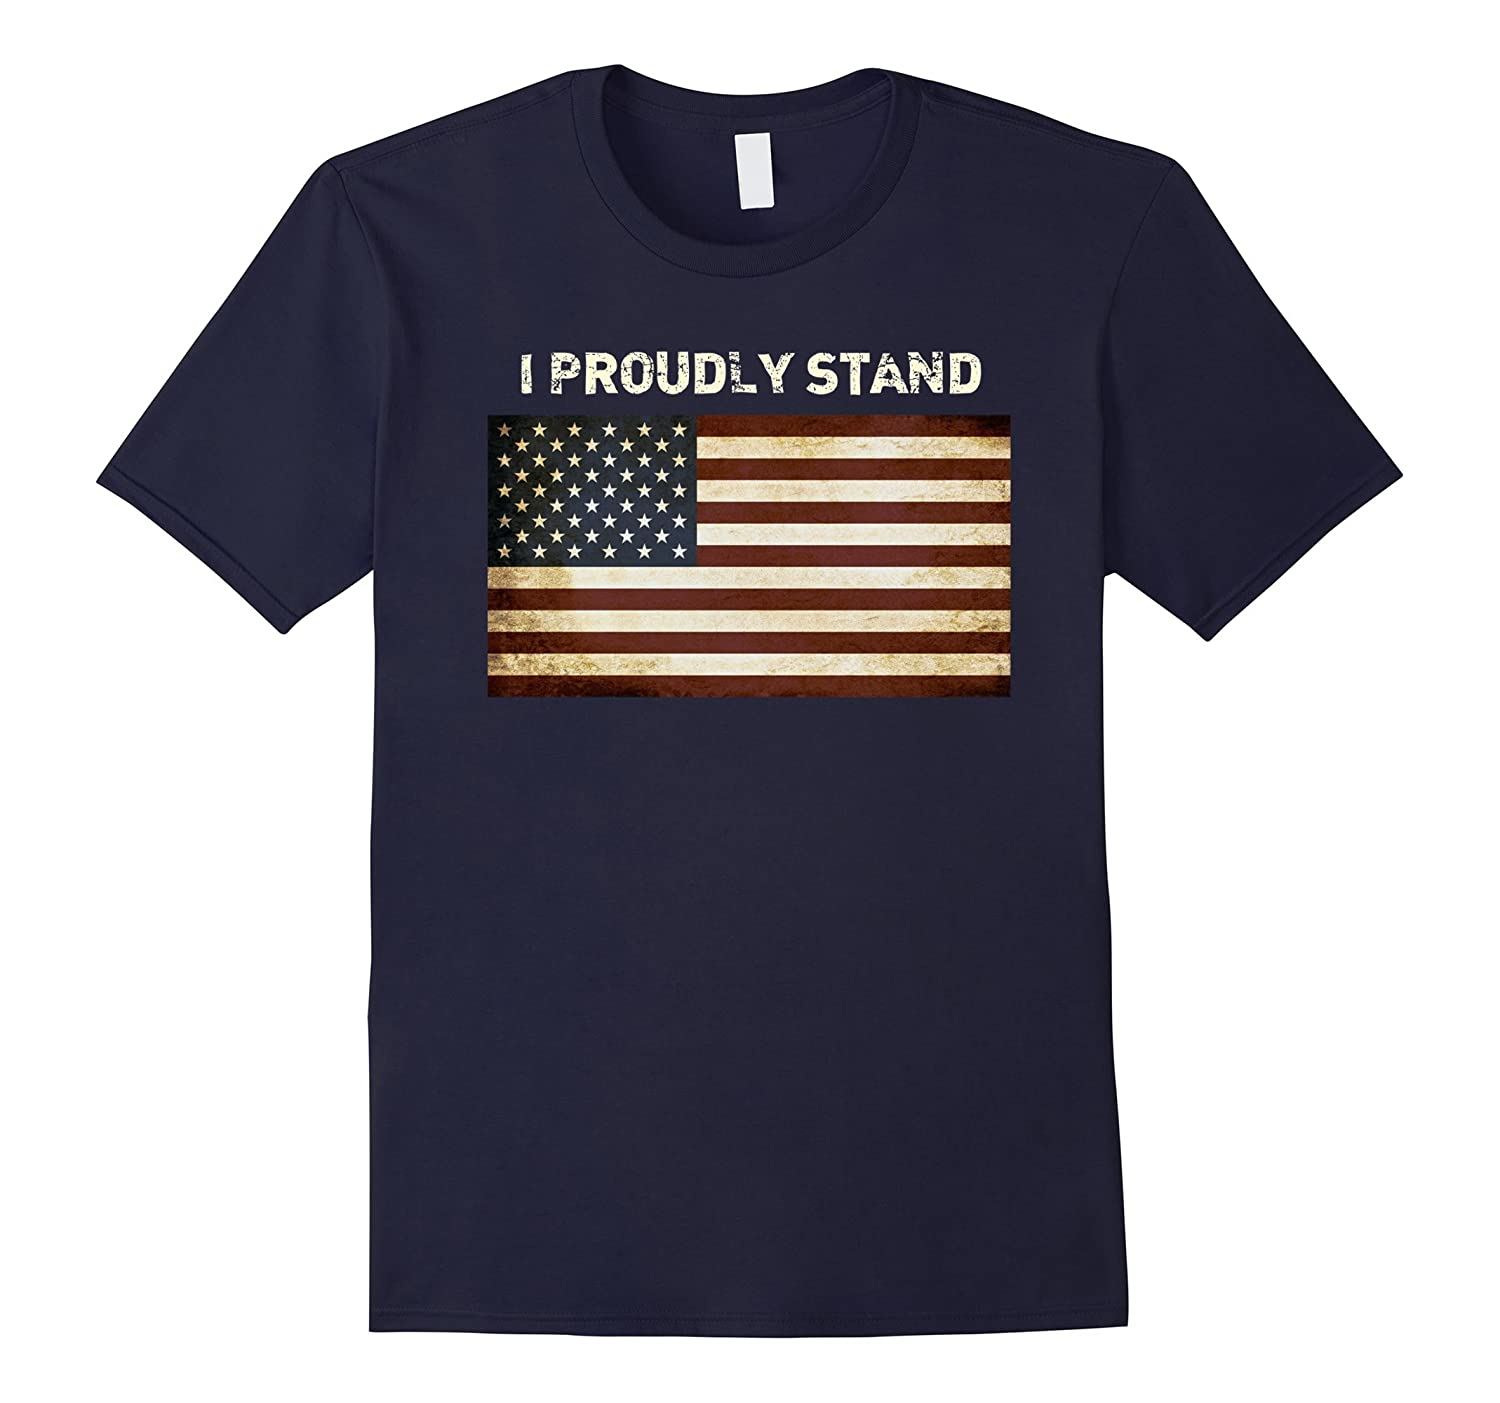 A Proud American Shirt I Proudly Stand for the Flag Tshirt-BN